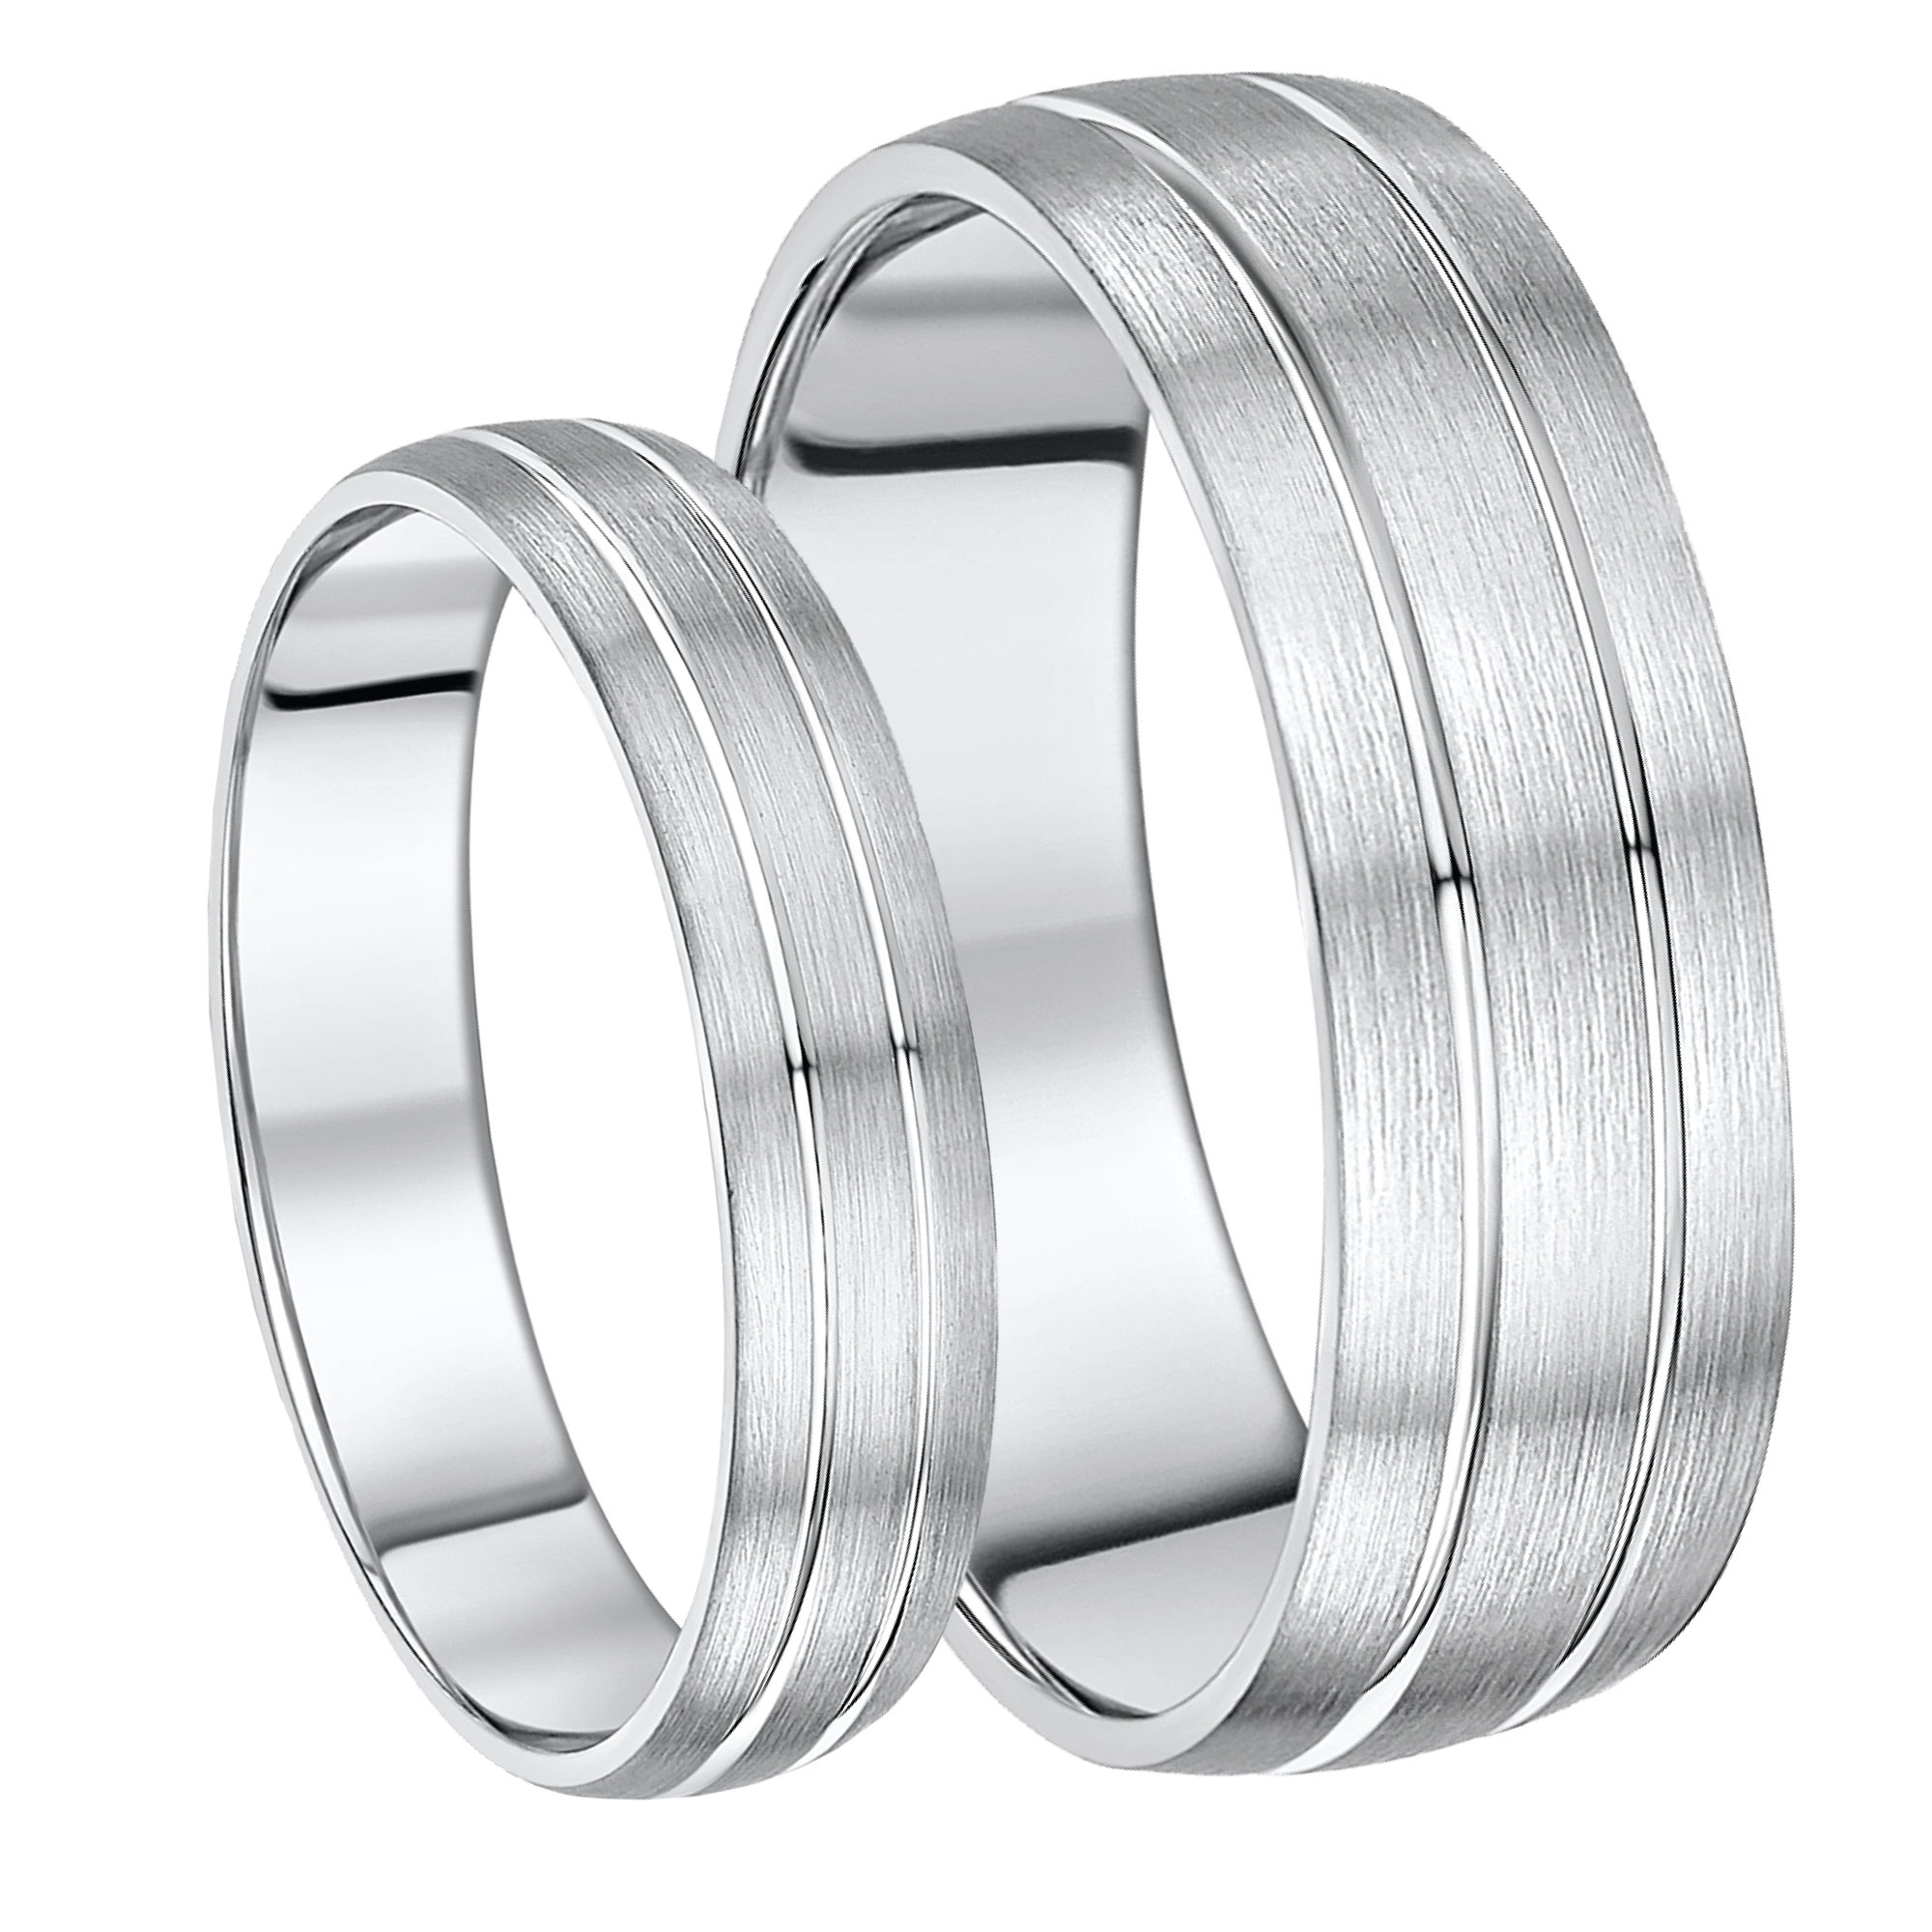 Palladium Double Grooved His & Hers 5&7 Wedding Ring Bands